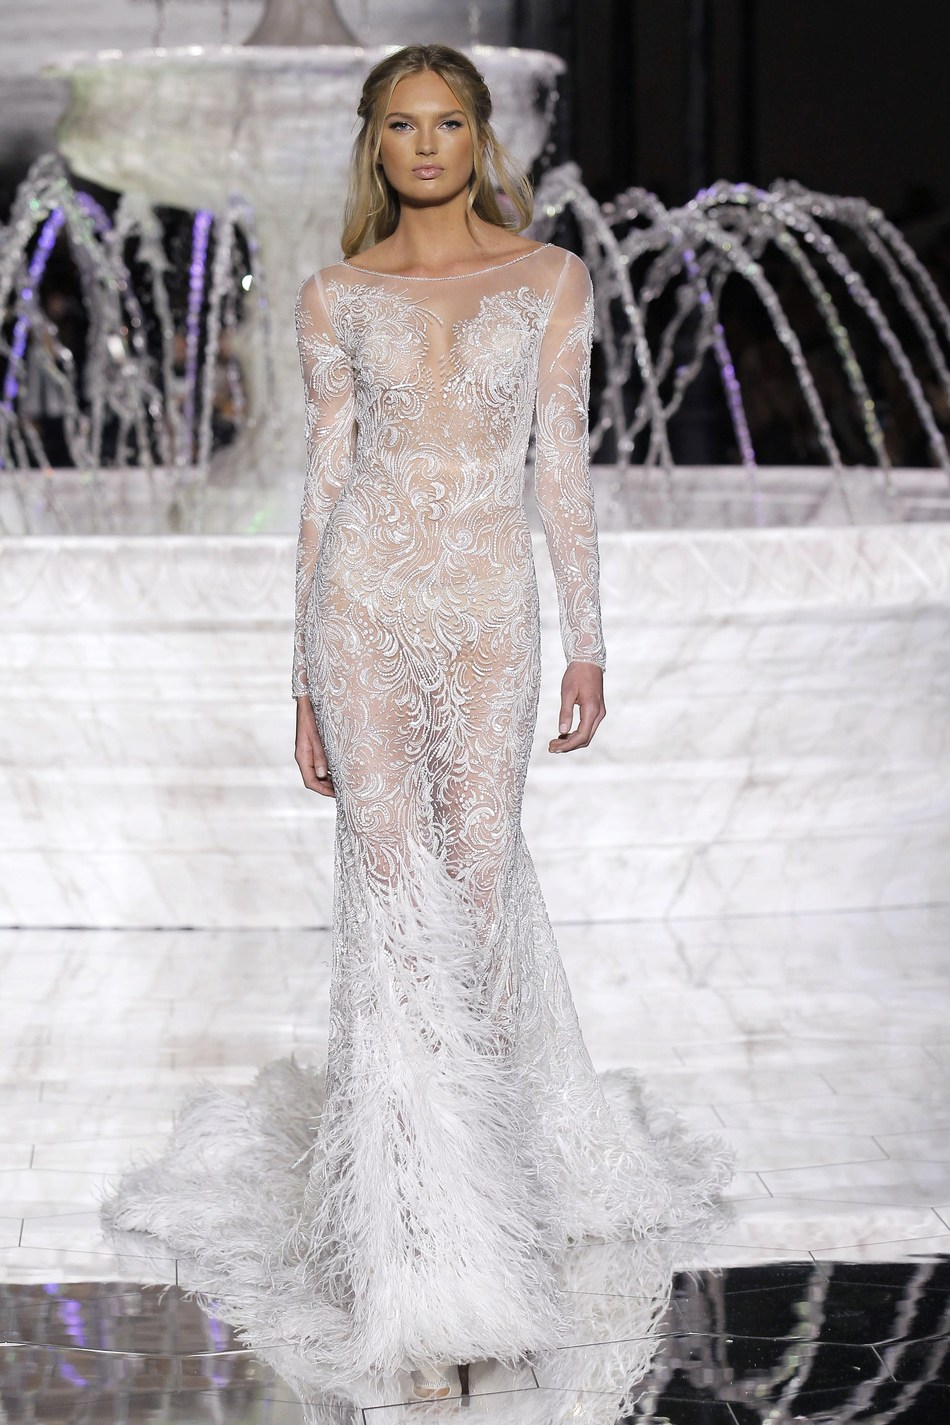 ROMEE STRIJD at the PRONOVIAS FASHION SHOW in Barcelona with the RISUENA dress from the 2018 ATELIER PRONOVIAS COLLECTION